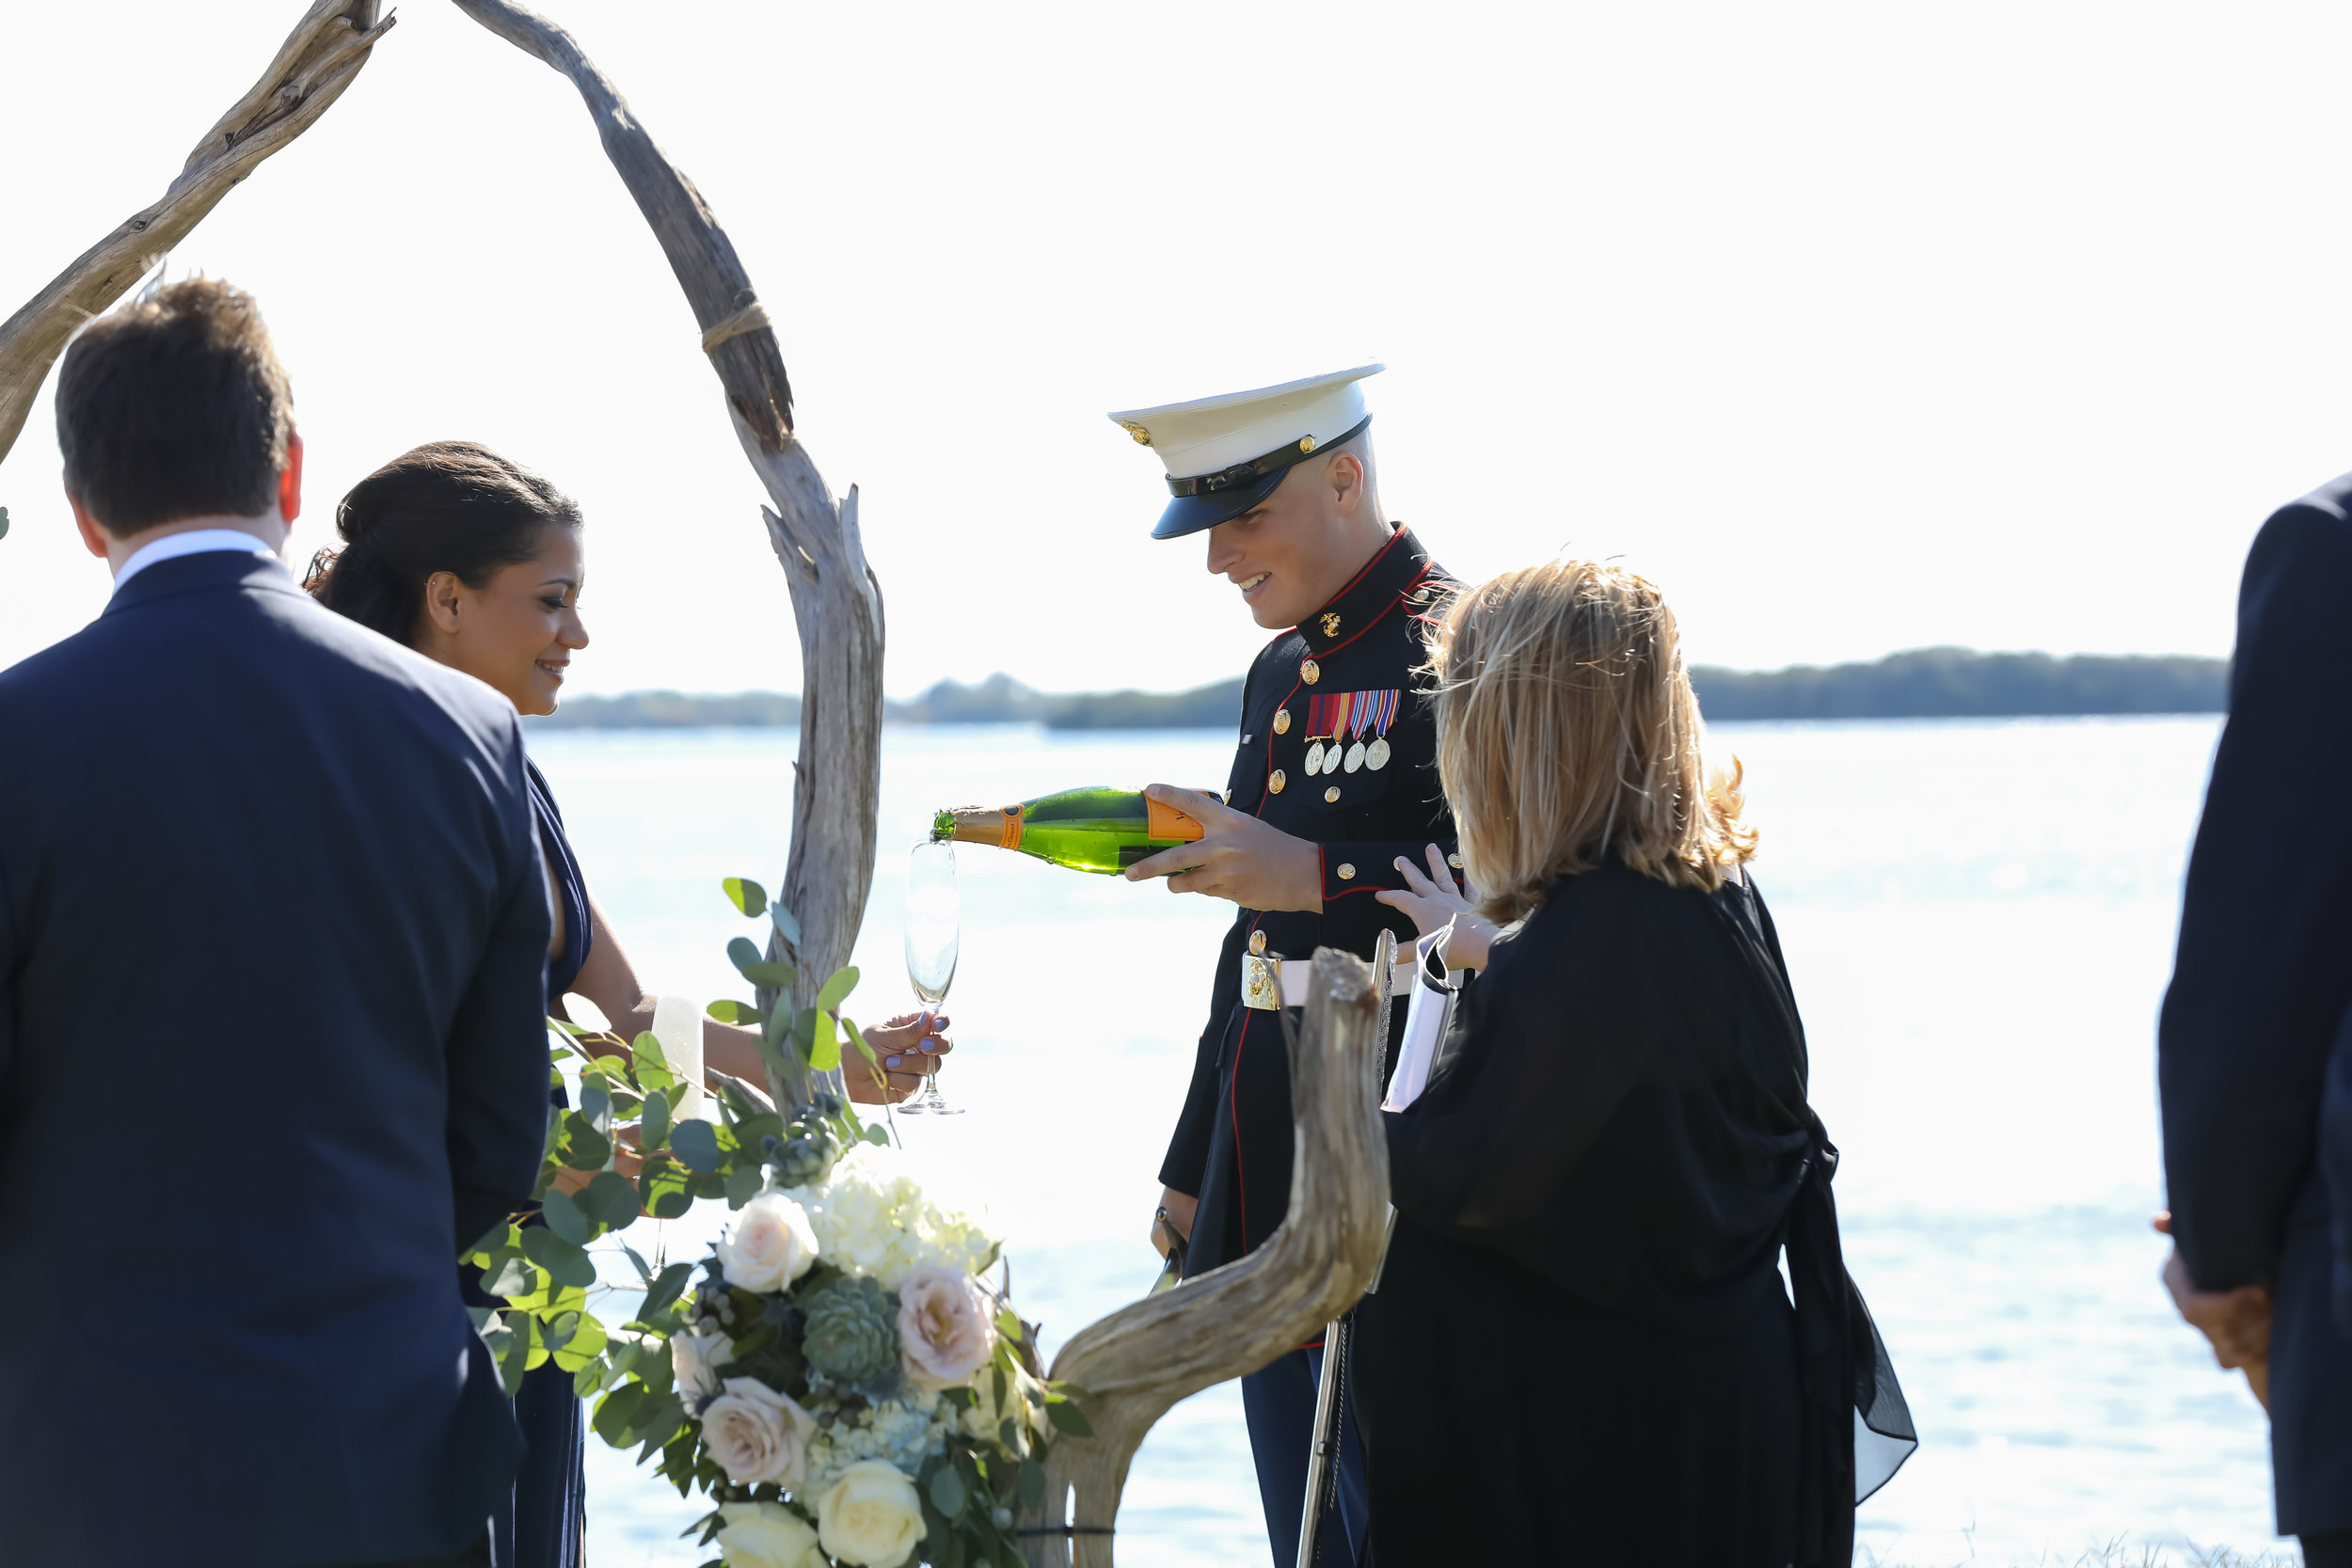 The bride's brother, dressed in full uniform, sabered a bottle of champagne for a ceremonial toast before the couple was pronounced husband and wife.